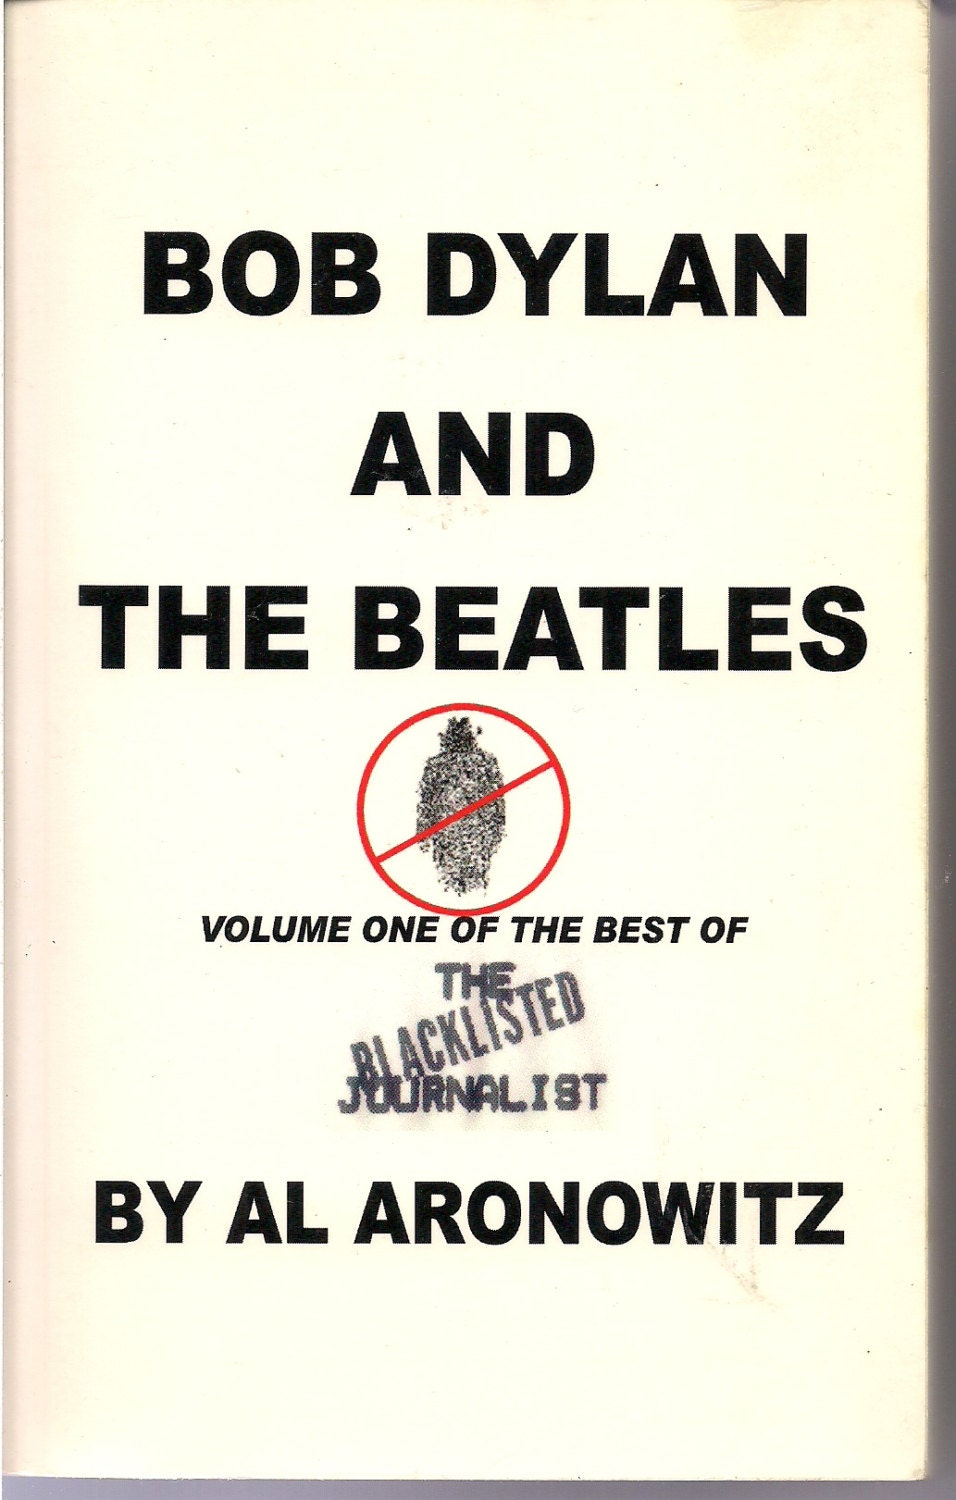 the influence of the beatles on bob dylan Unlike most editing & proofreading services, we edit for everything: grammar, spelling, punctuation, idea flow, sentence structure, & more get started now.